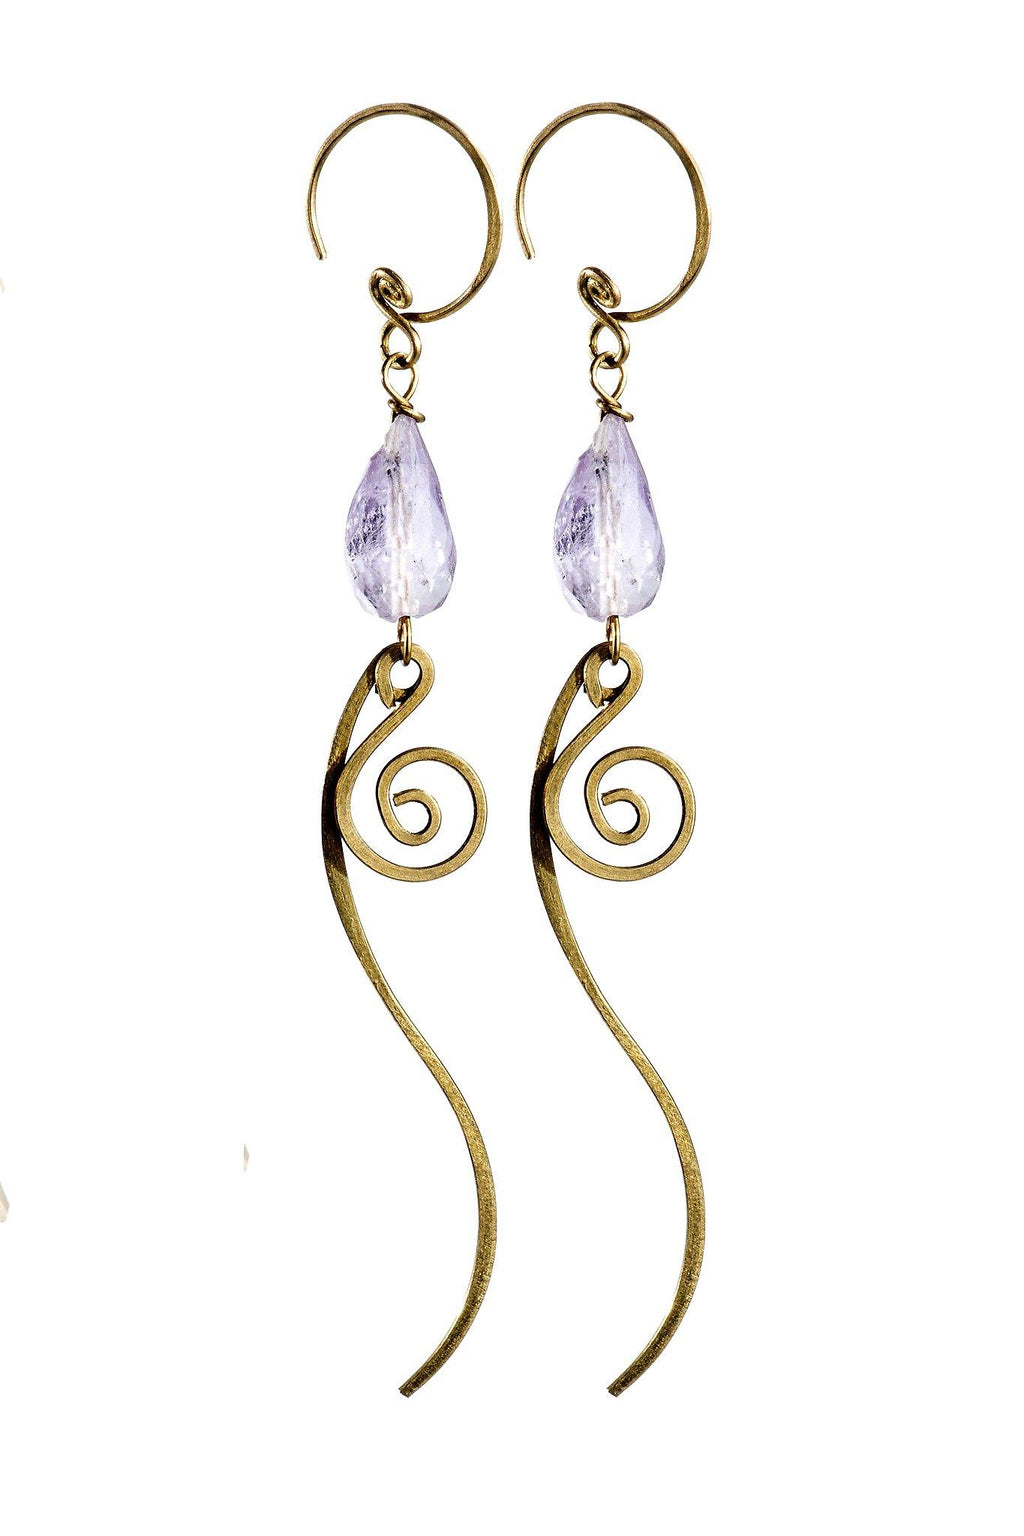 Brass Drop Swirl Amethyst Earrings - Filosophy